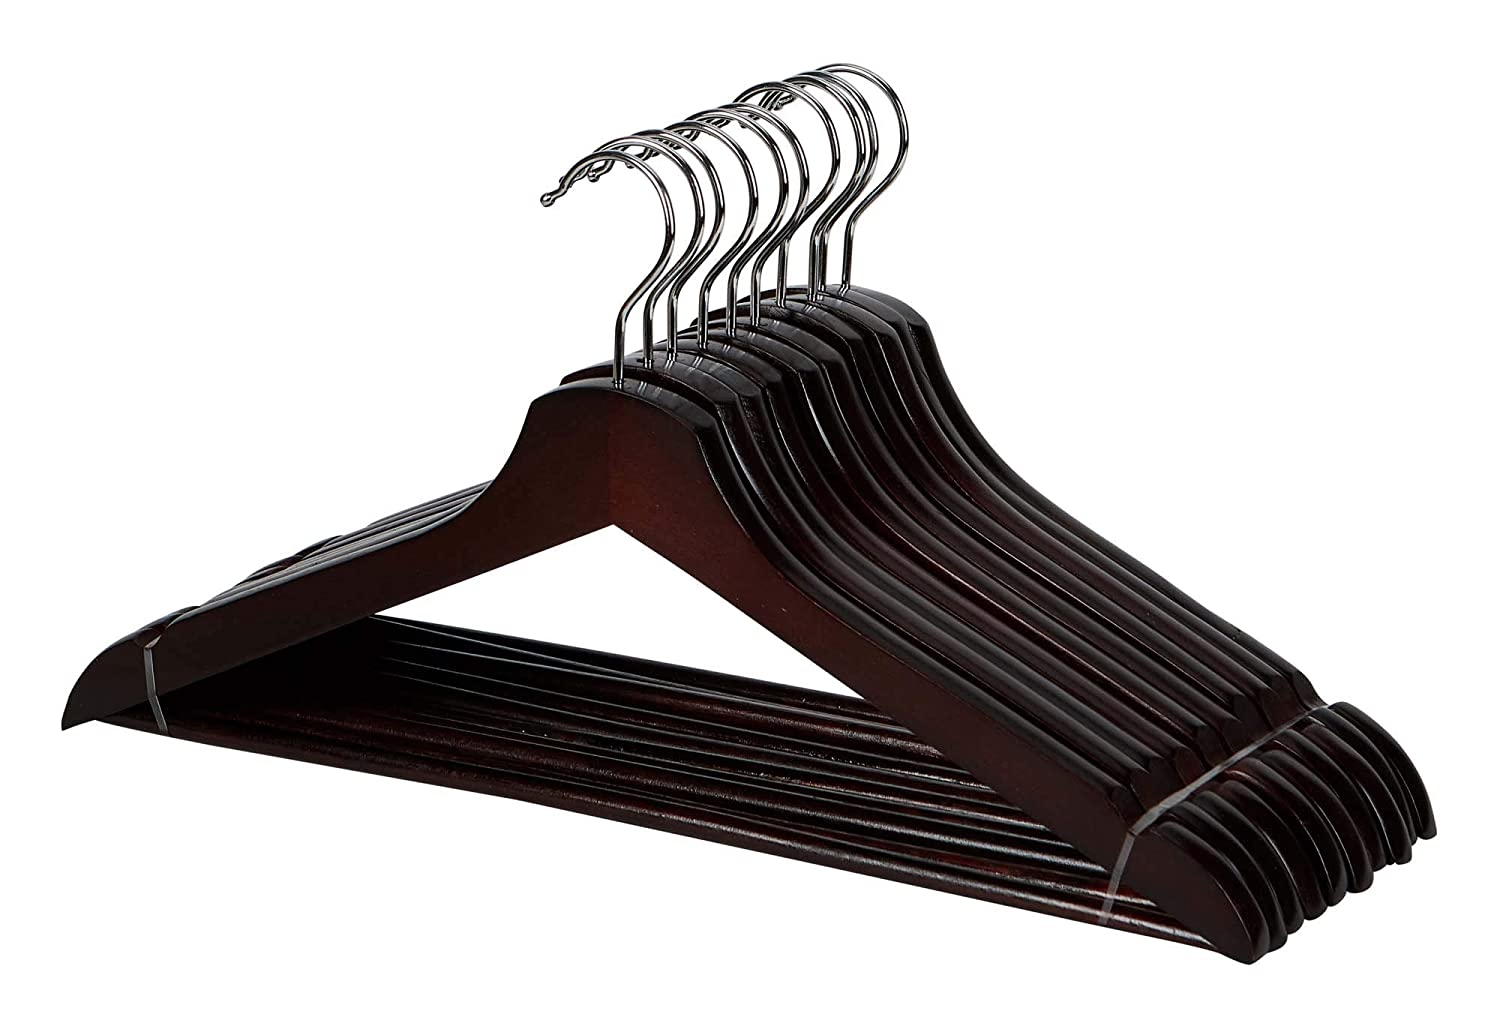 WOOD, in Cherry Luxury Collection HANGERS 10 Pack Flathead Inspired Living by Mesa Inspired Living Wooden Coat /& Suit Heavy Duty